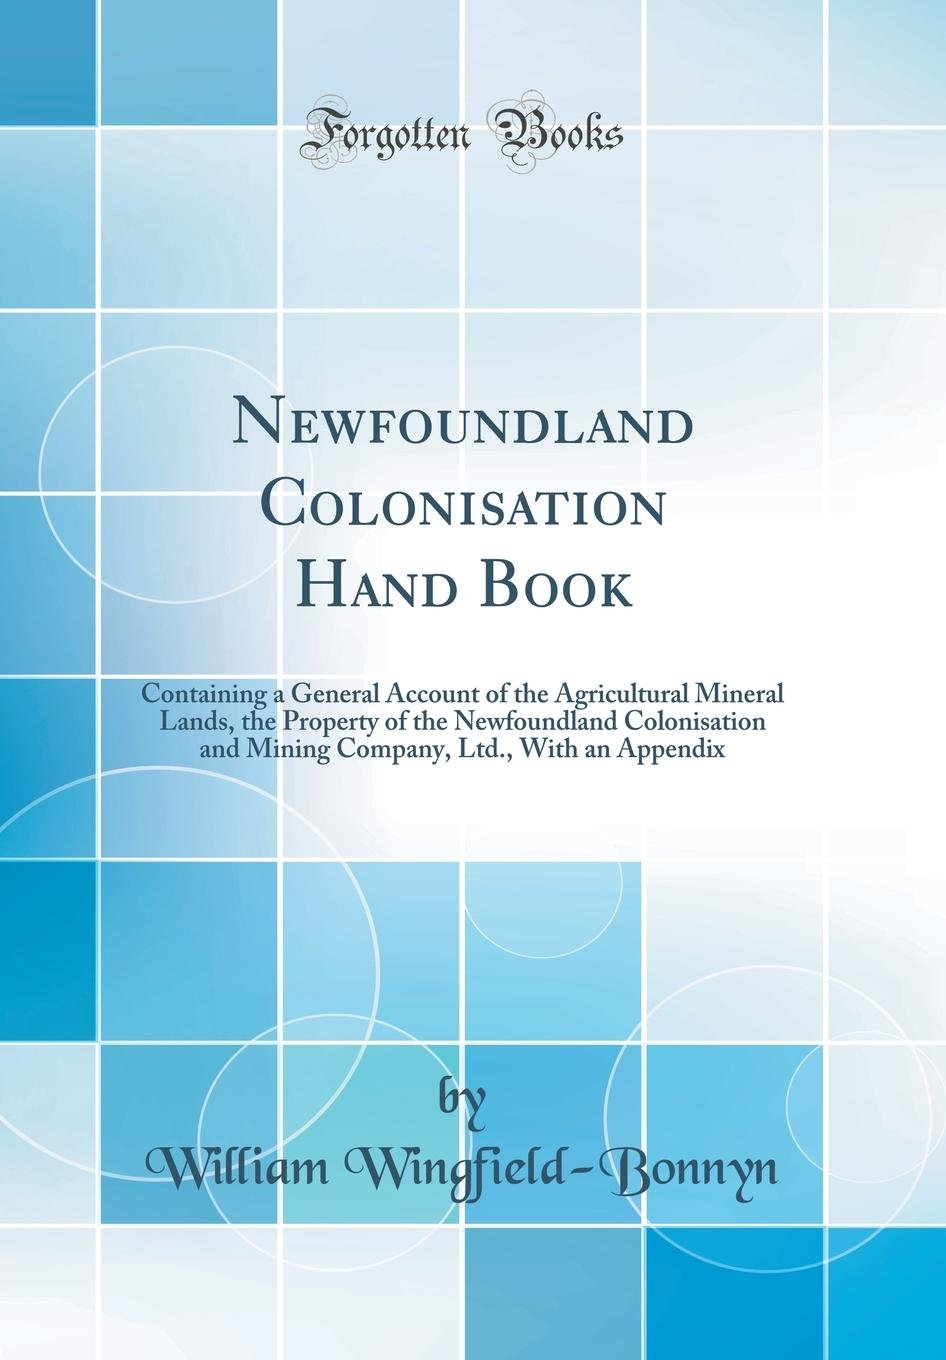 Newfoundland Colonisation Hand Book: Containing a General Account of the Agricultural Mineral Lands, the Property of the Newfoundland Colonisation and ... Ltd., with an Appendix (Classic Reprint) pdf